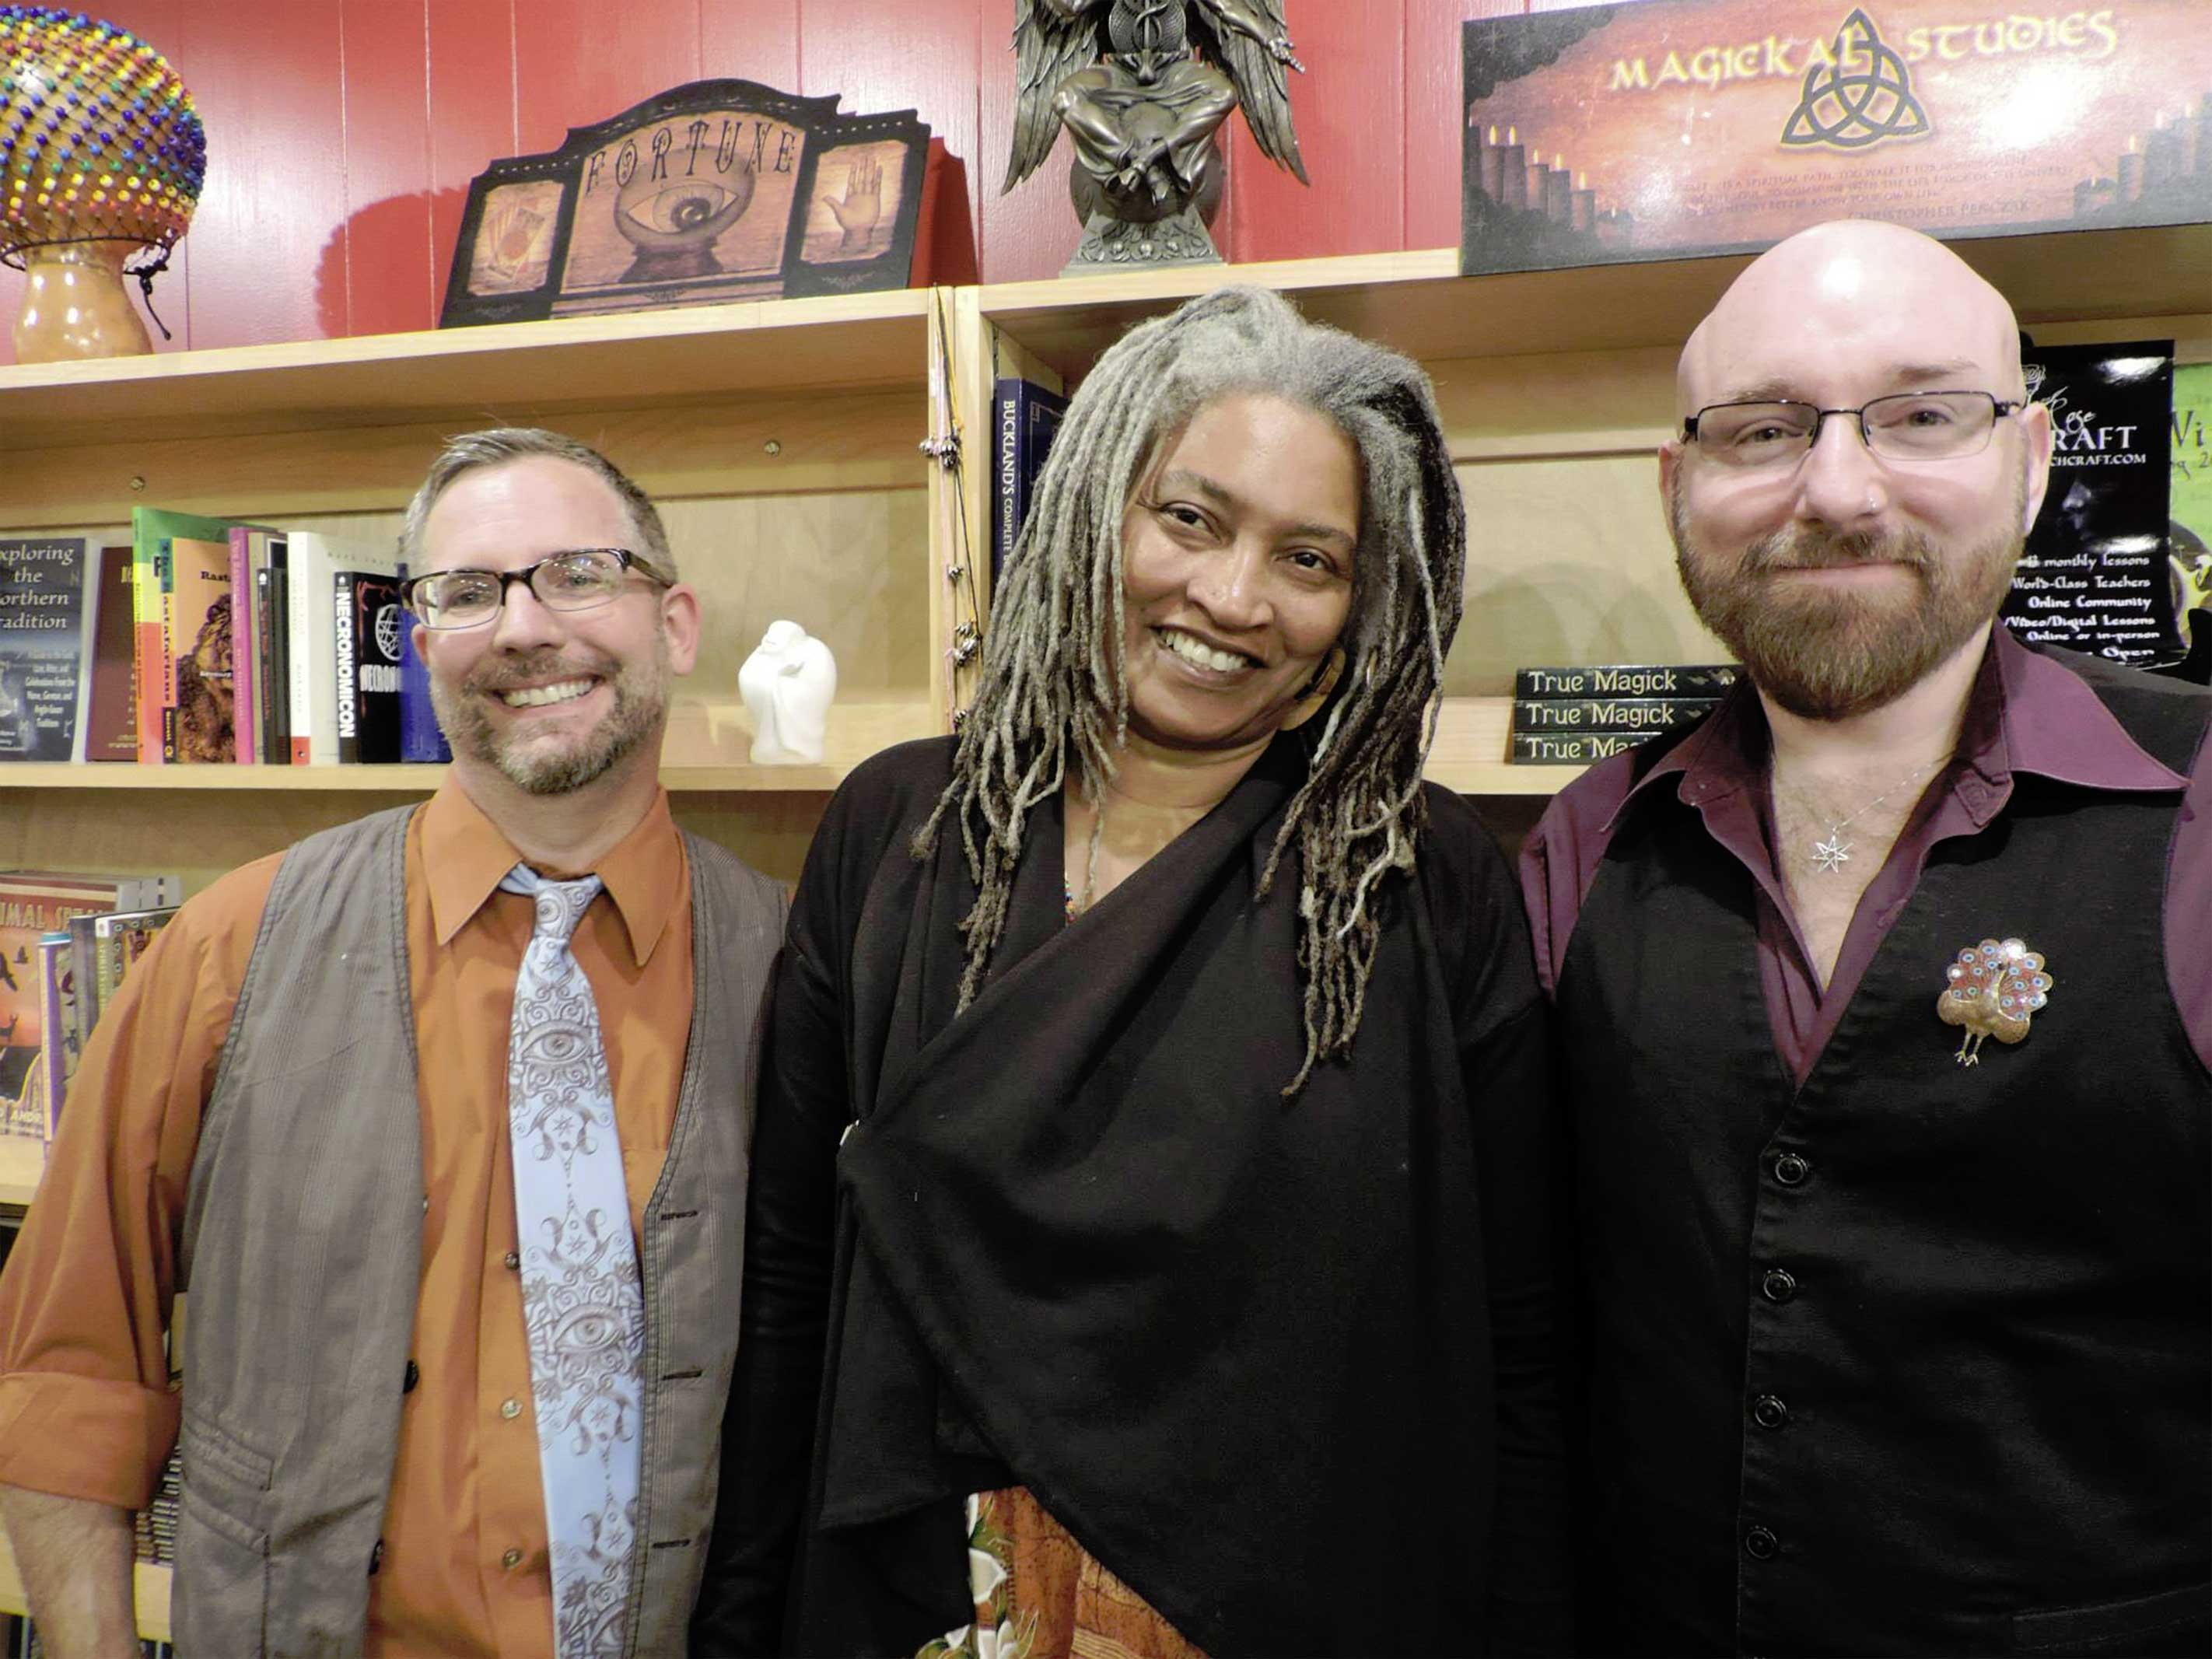 Me and the owners of The Mystic Dream